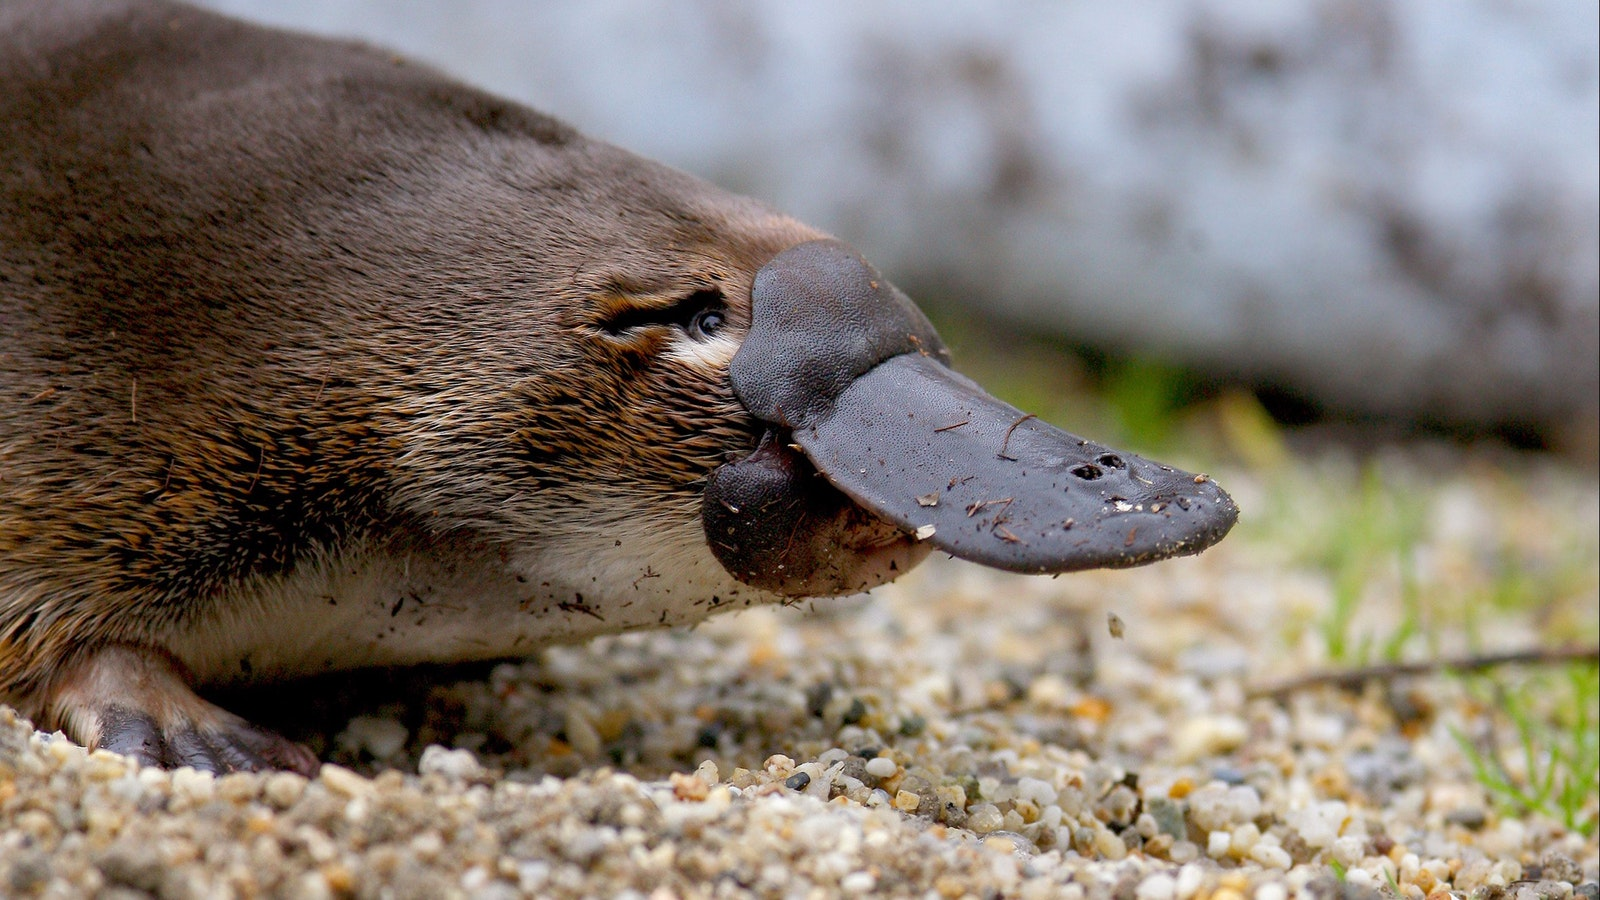 Millsom the platypus - adopted by Oceania Tours at Healesville Sanctuary